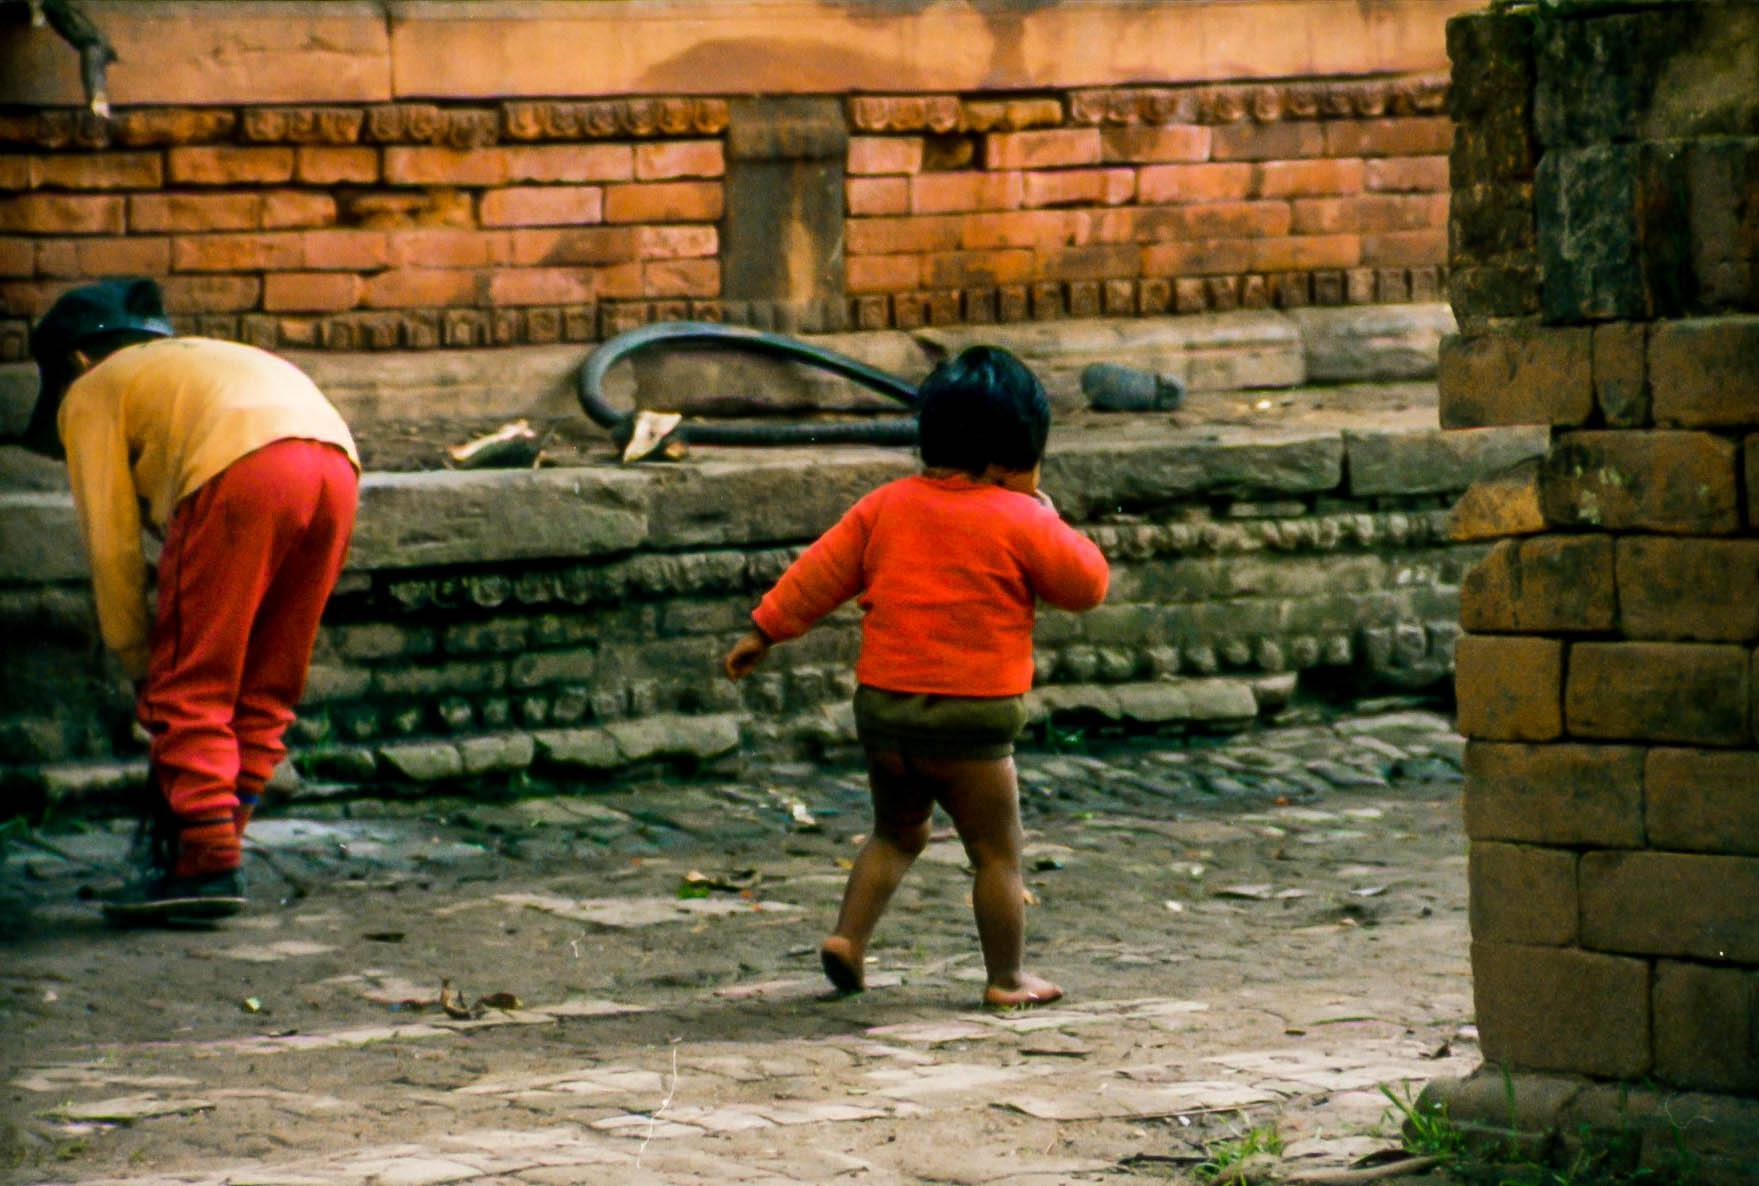 A child wandering the streets of Kathmandu during the Nepal Civil War.